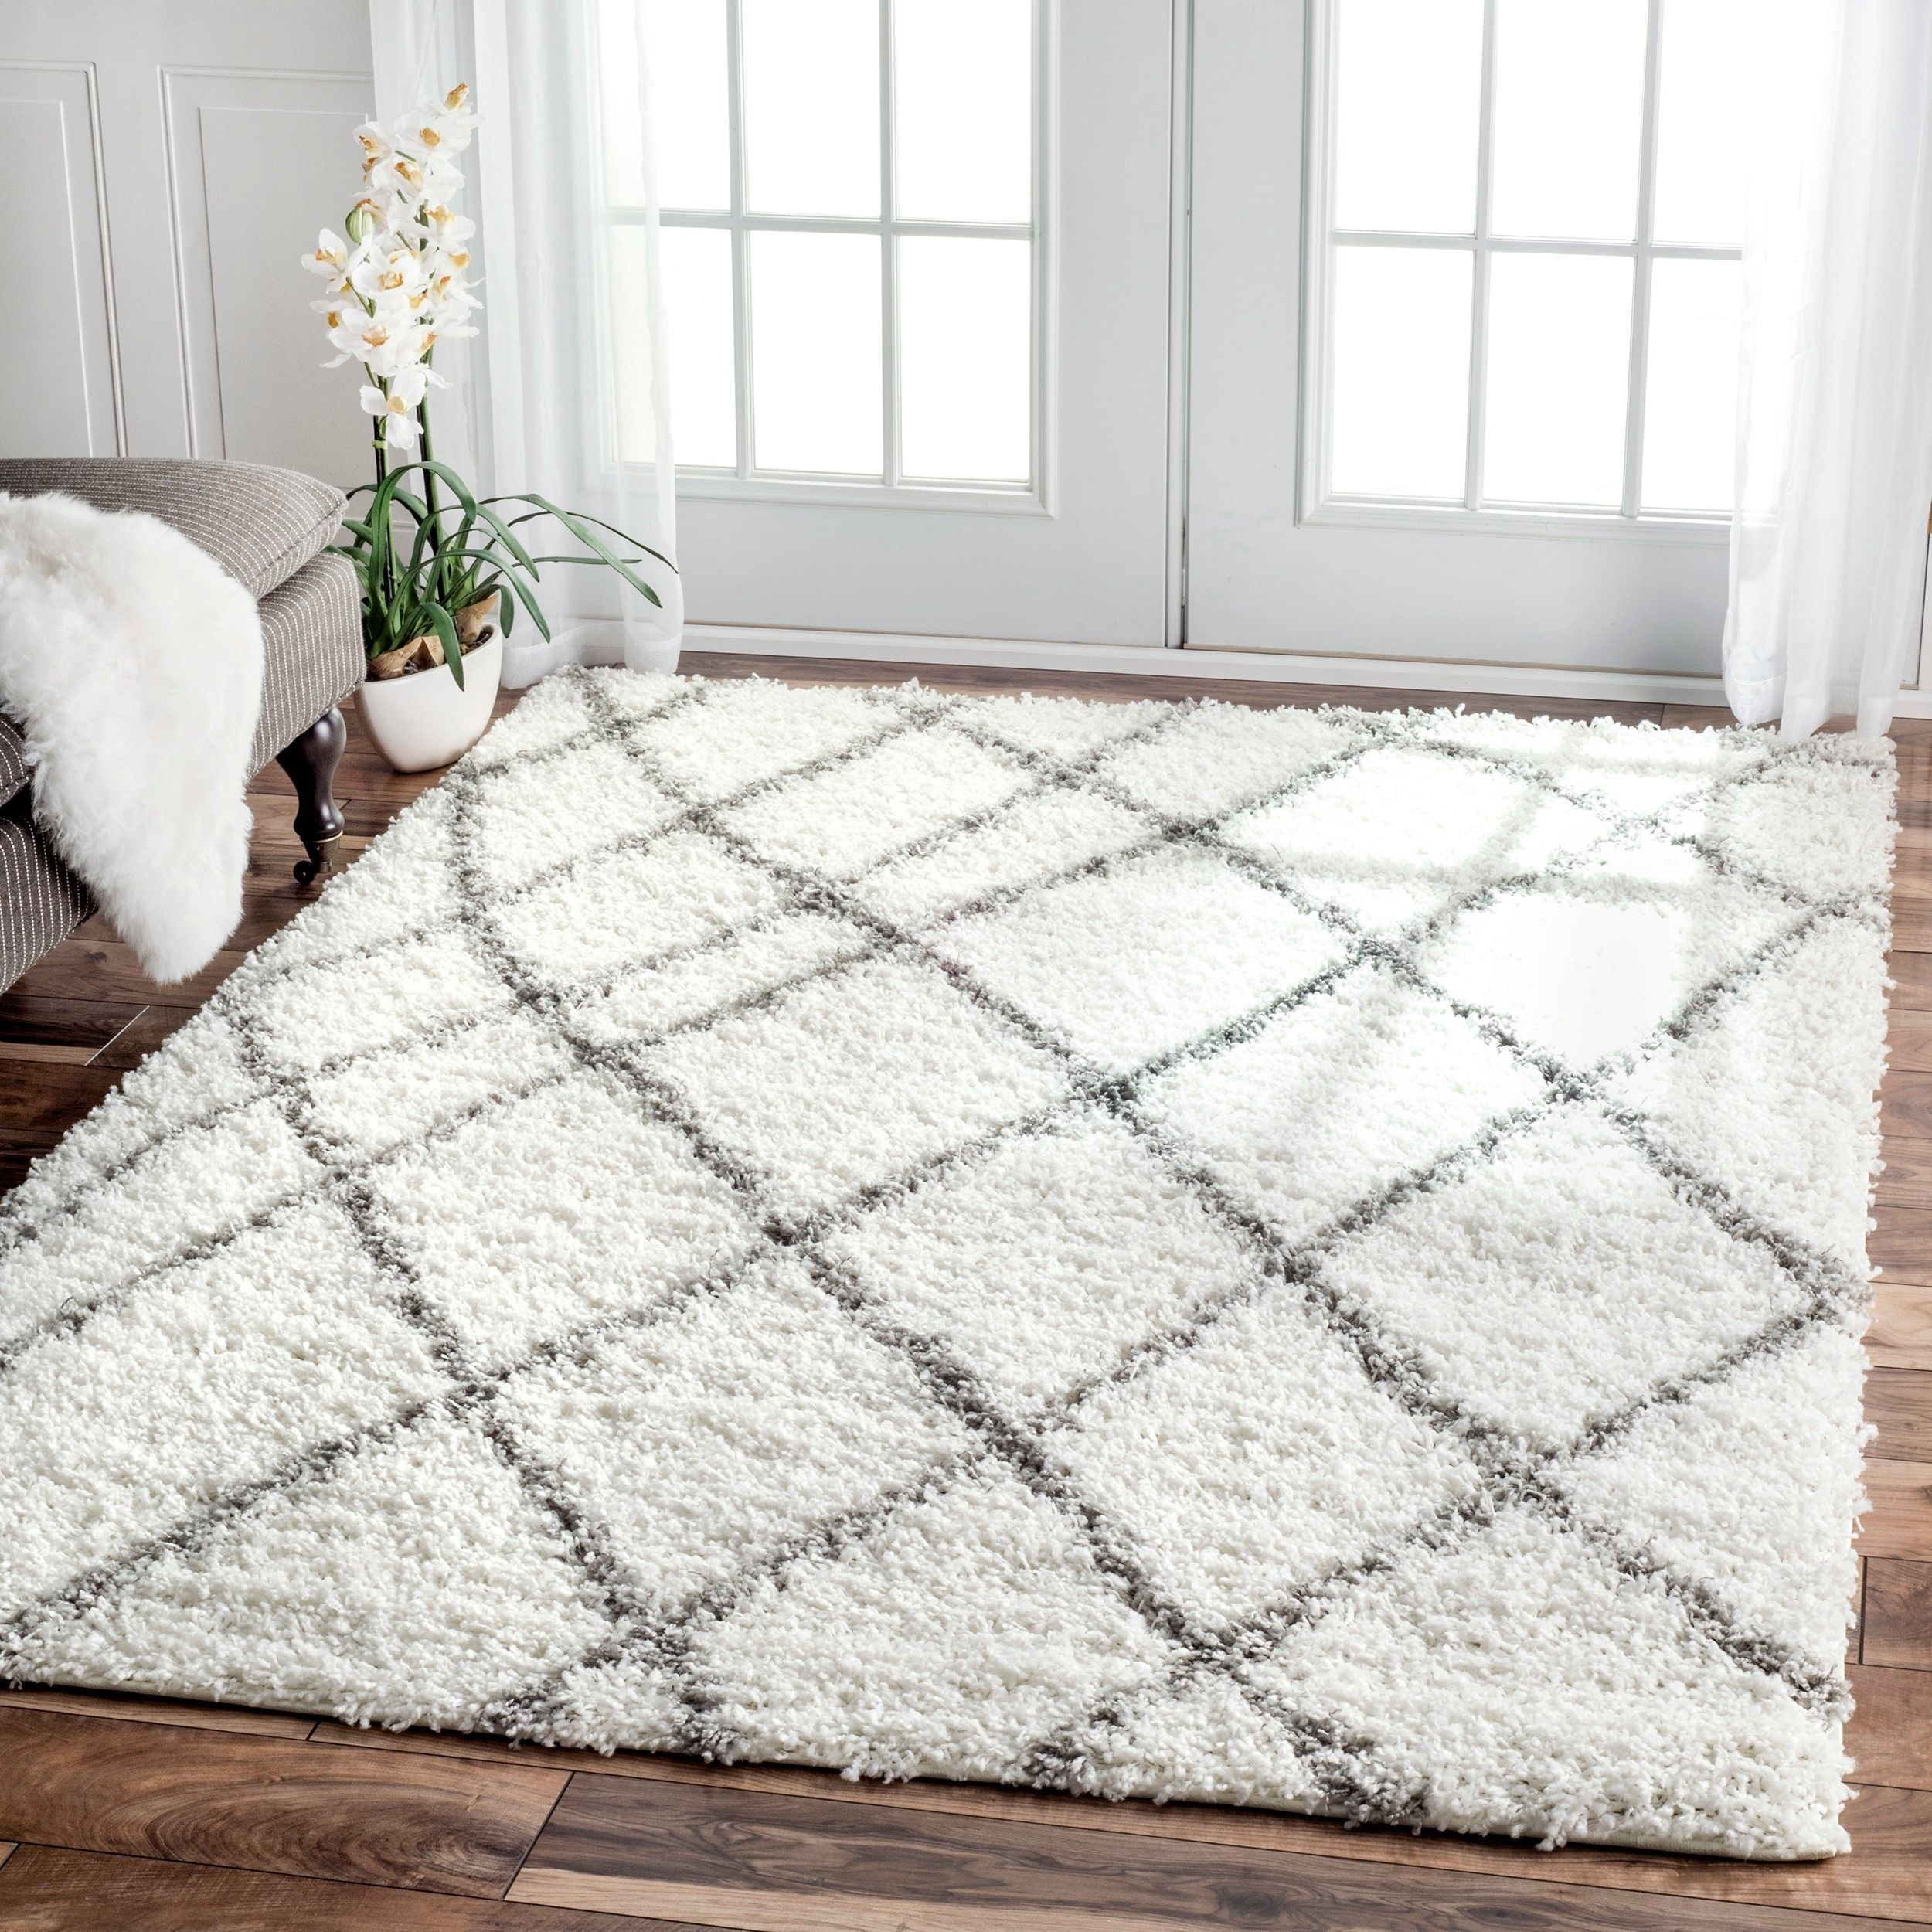 Our Best Rugs Deals